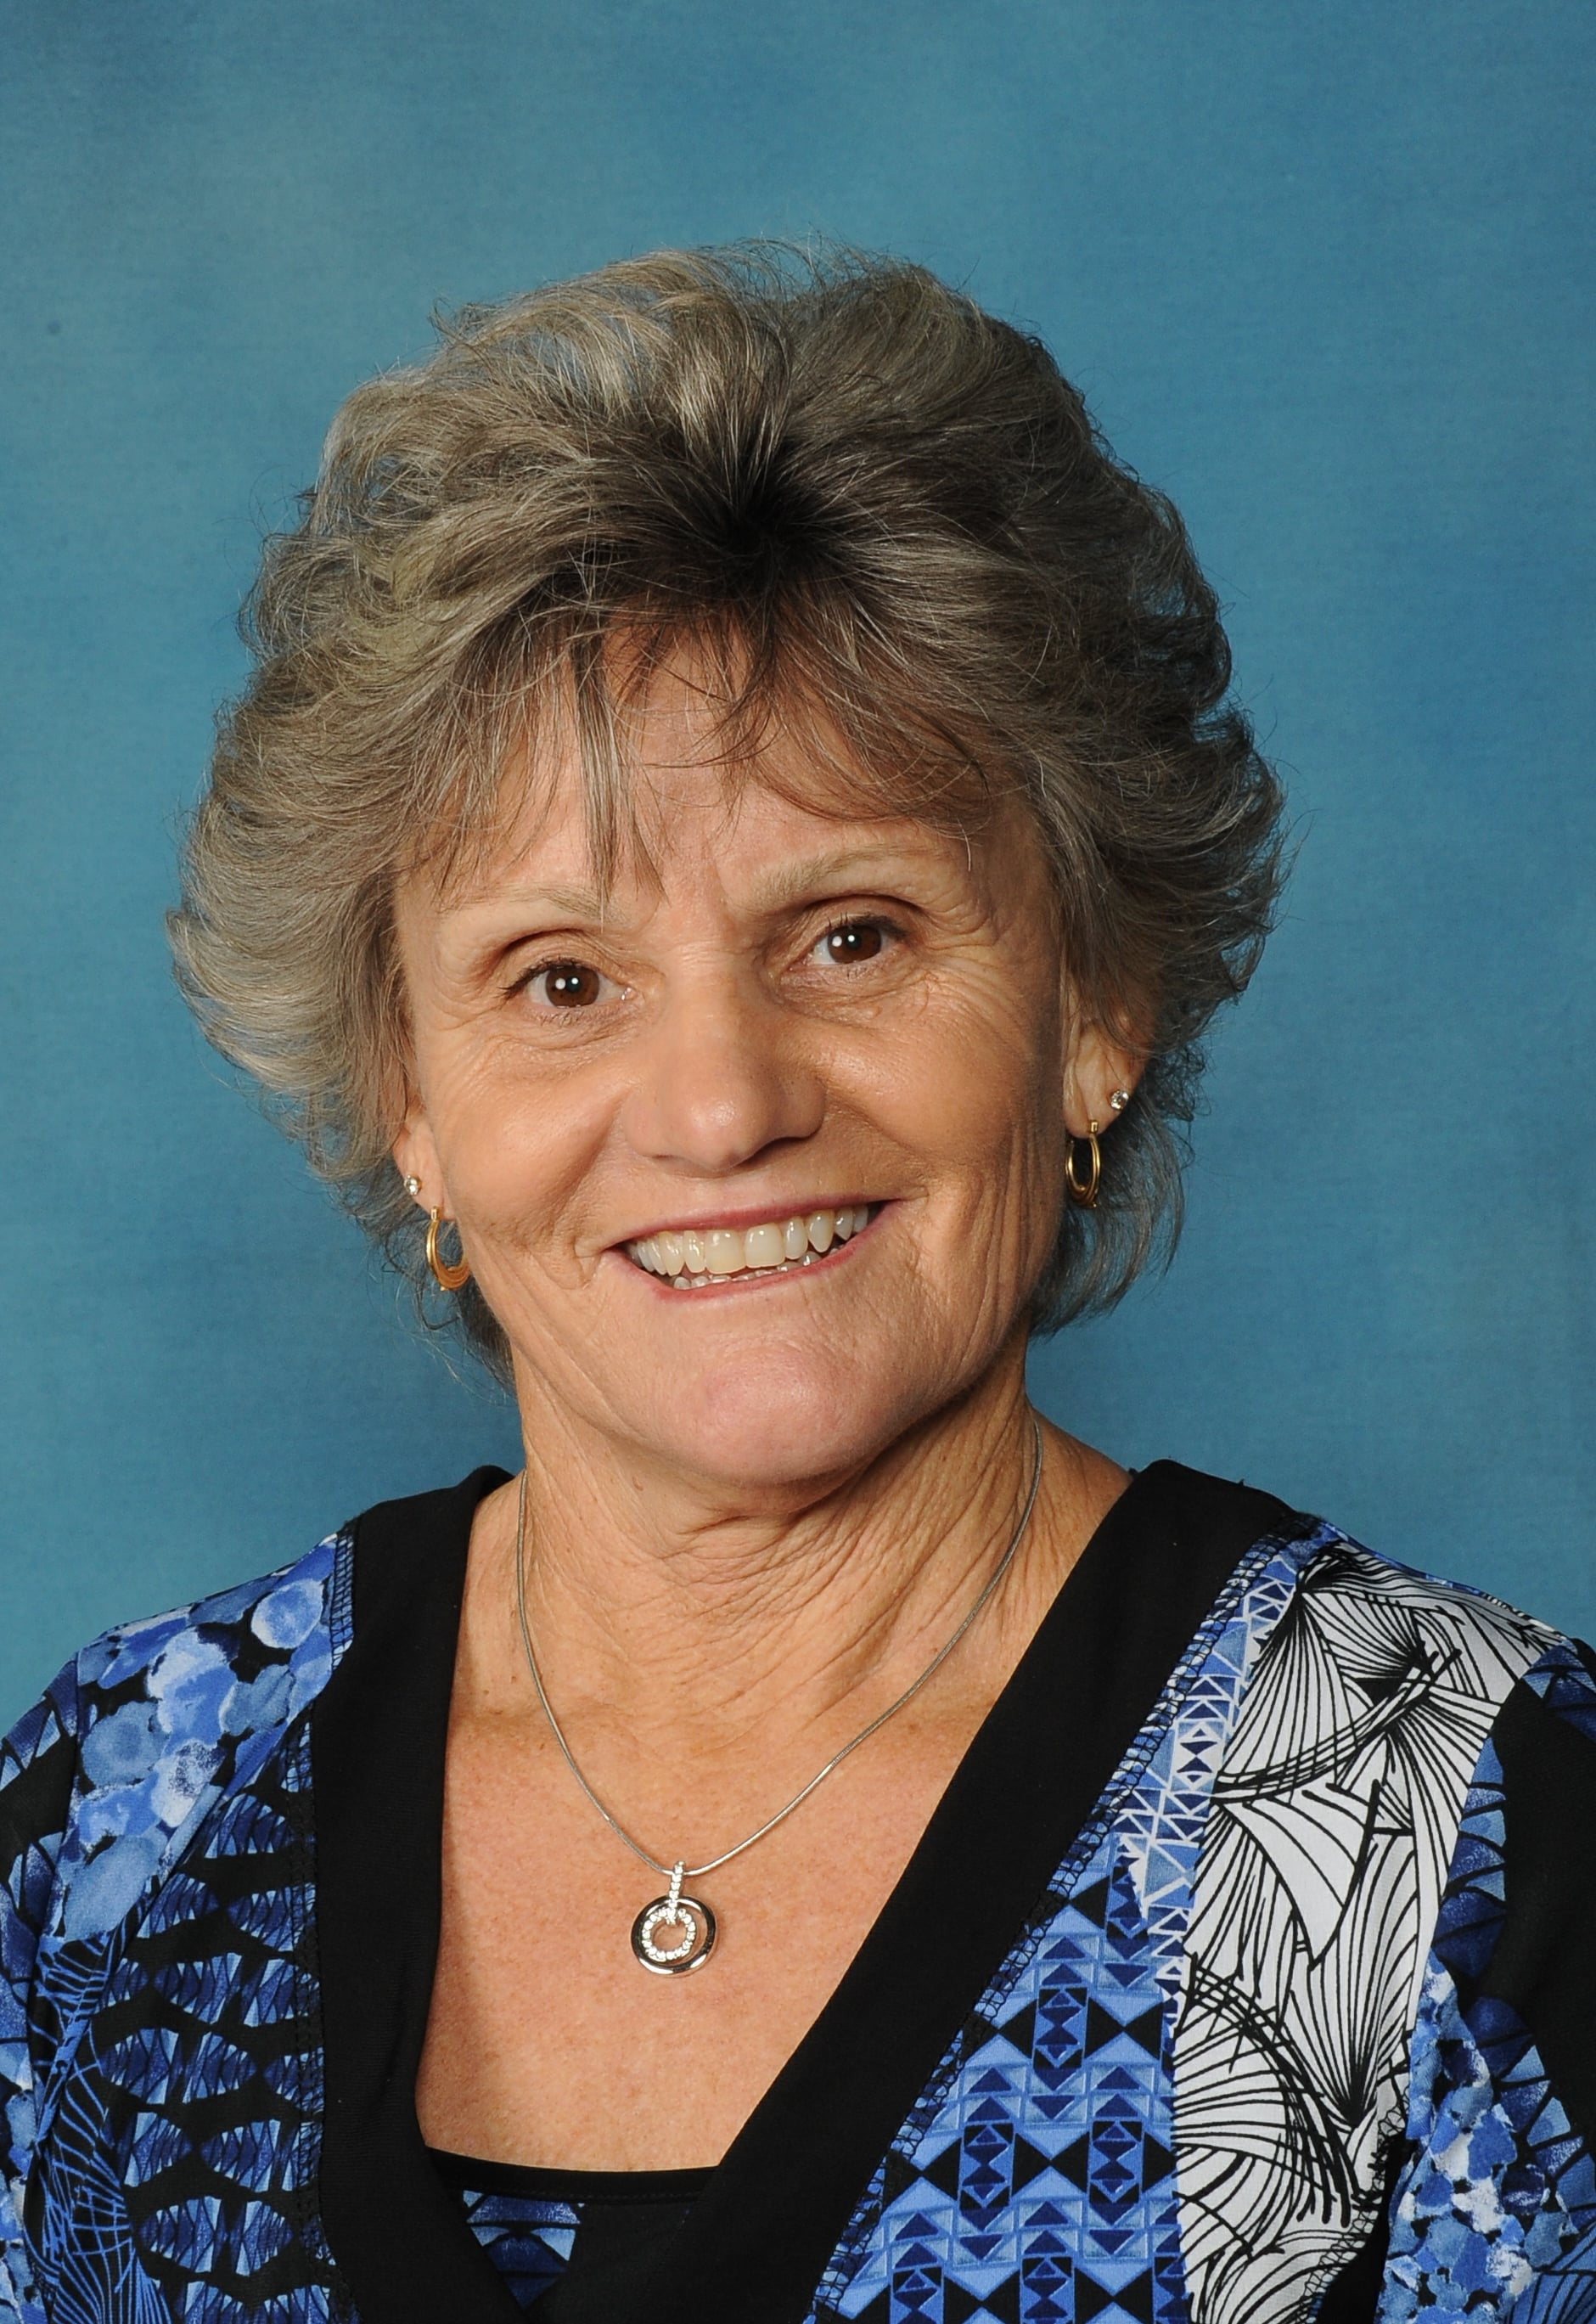 Keiser University's Donna White Elected as Southeast Section President of the LPGA Teaching and Club Professional